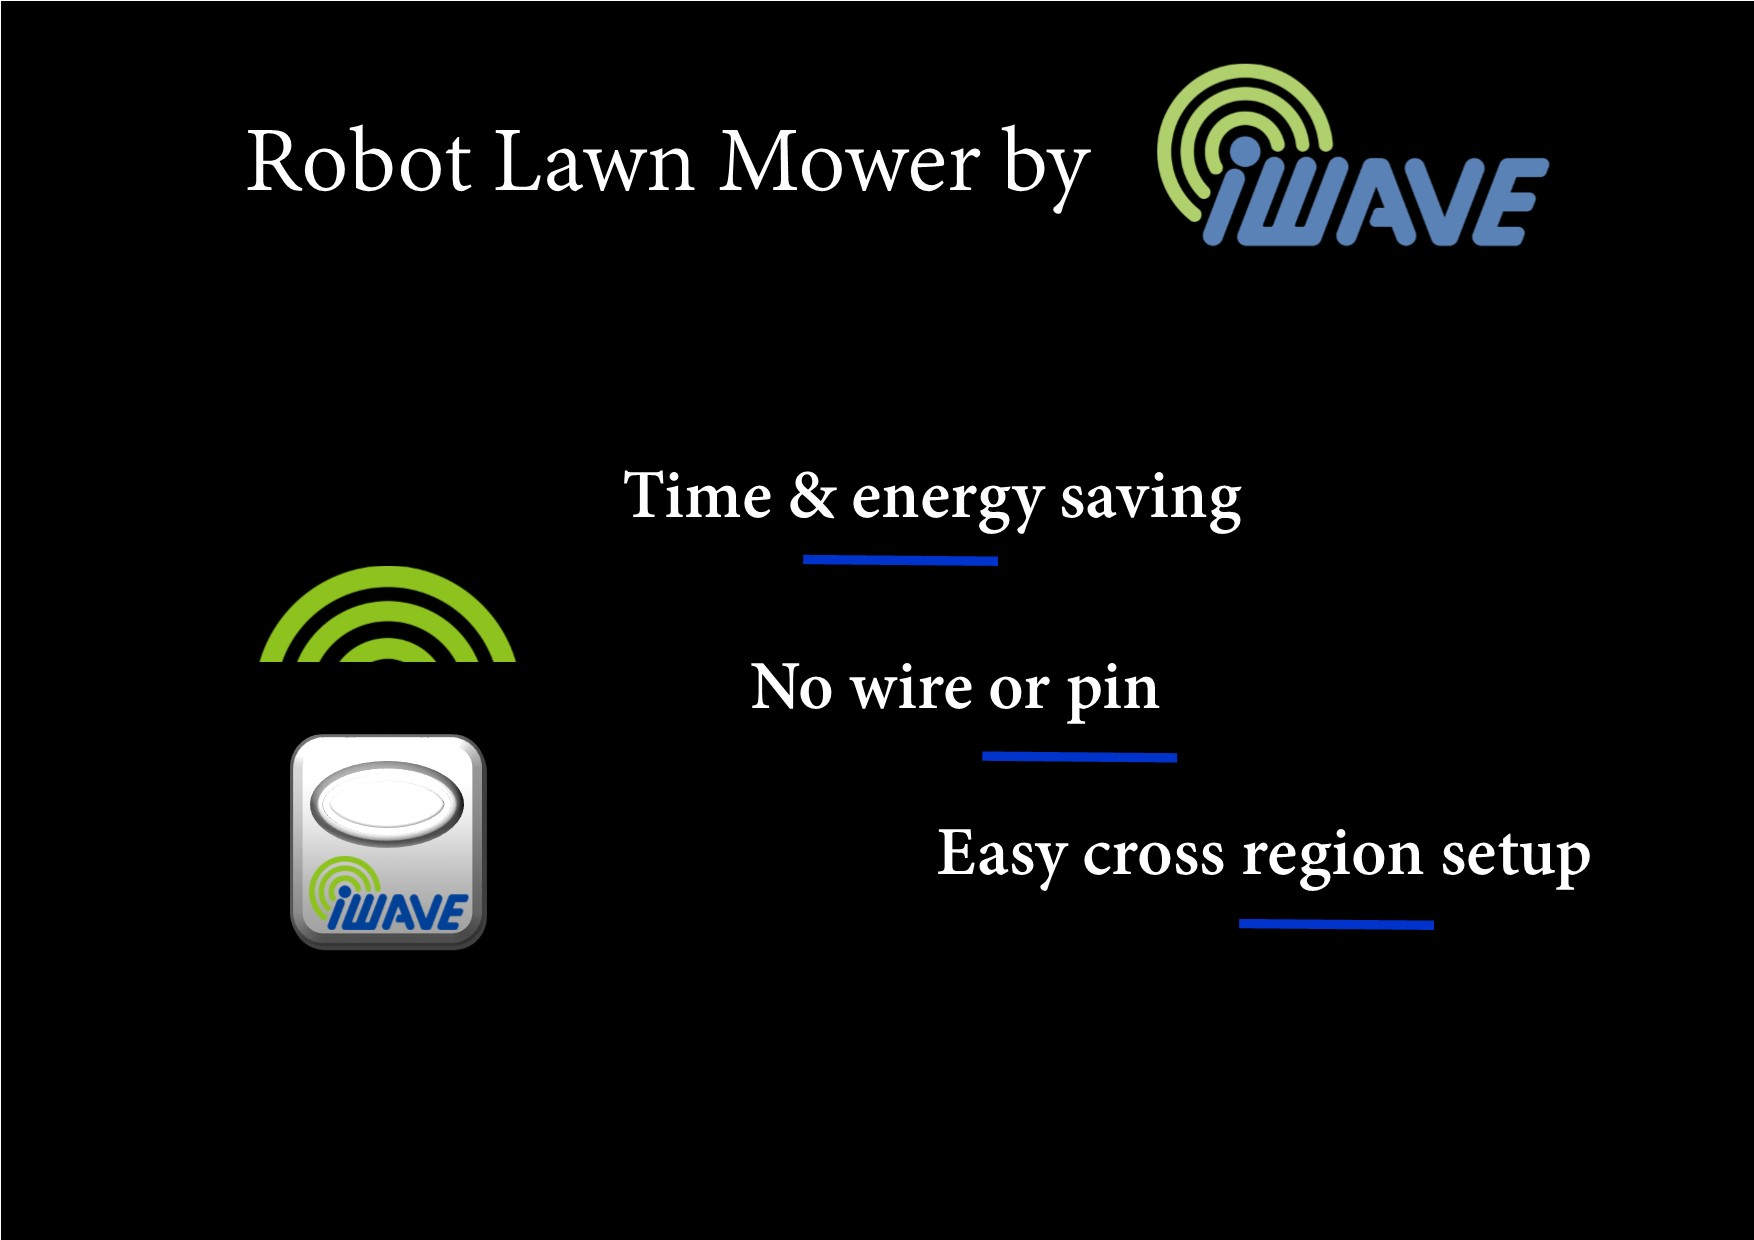 poster with a lawnmower robot and iwavenology logo